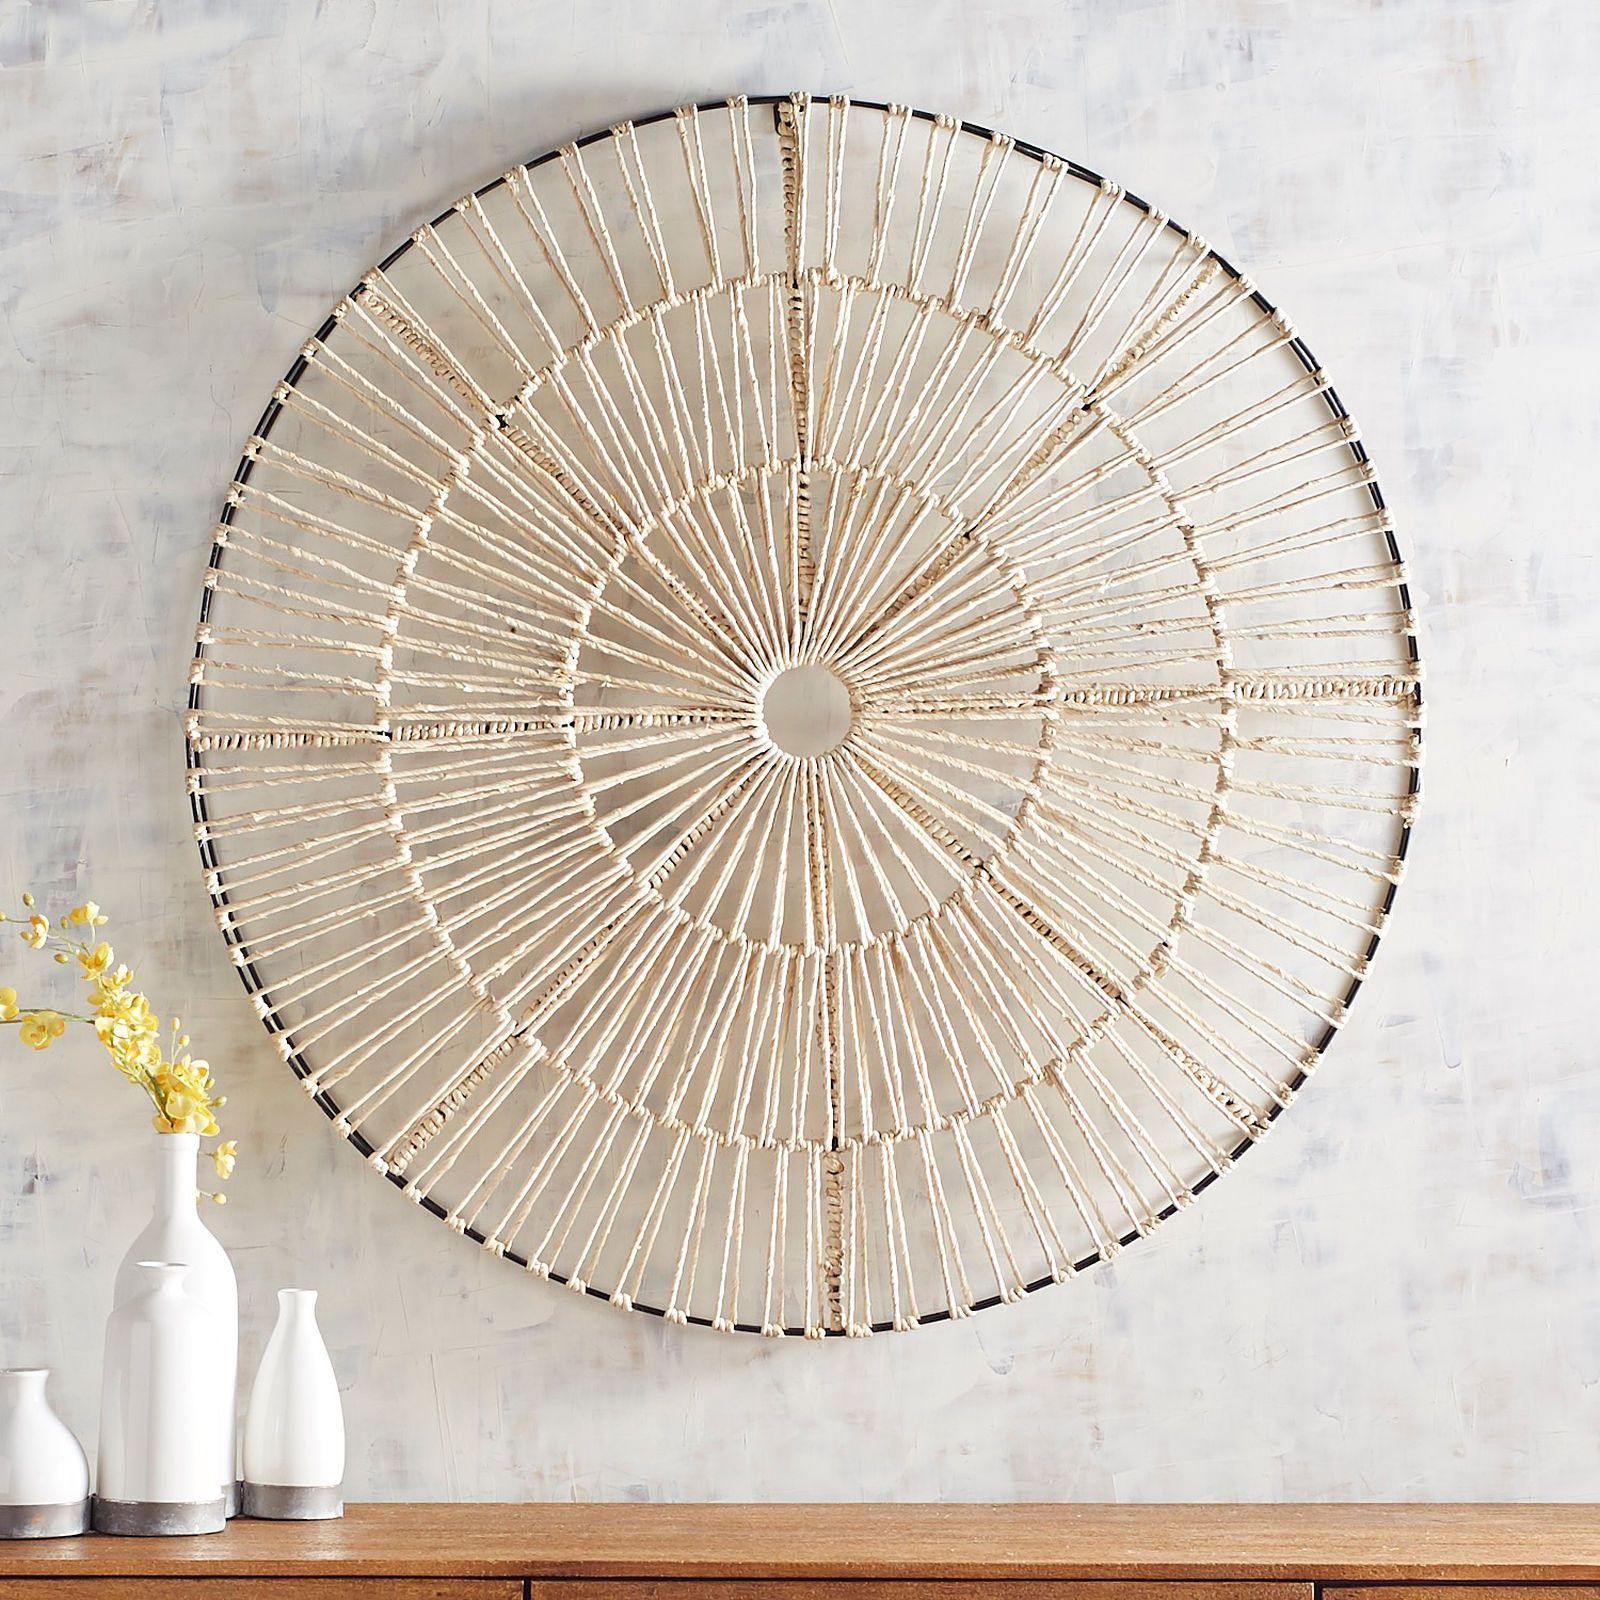 Natural Woven Round Wall Decor | Pier 1 Imports | Front Room inside 4 Piece Handwoven Wheel Wall Decor Sets (Image 26 of 30)